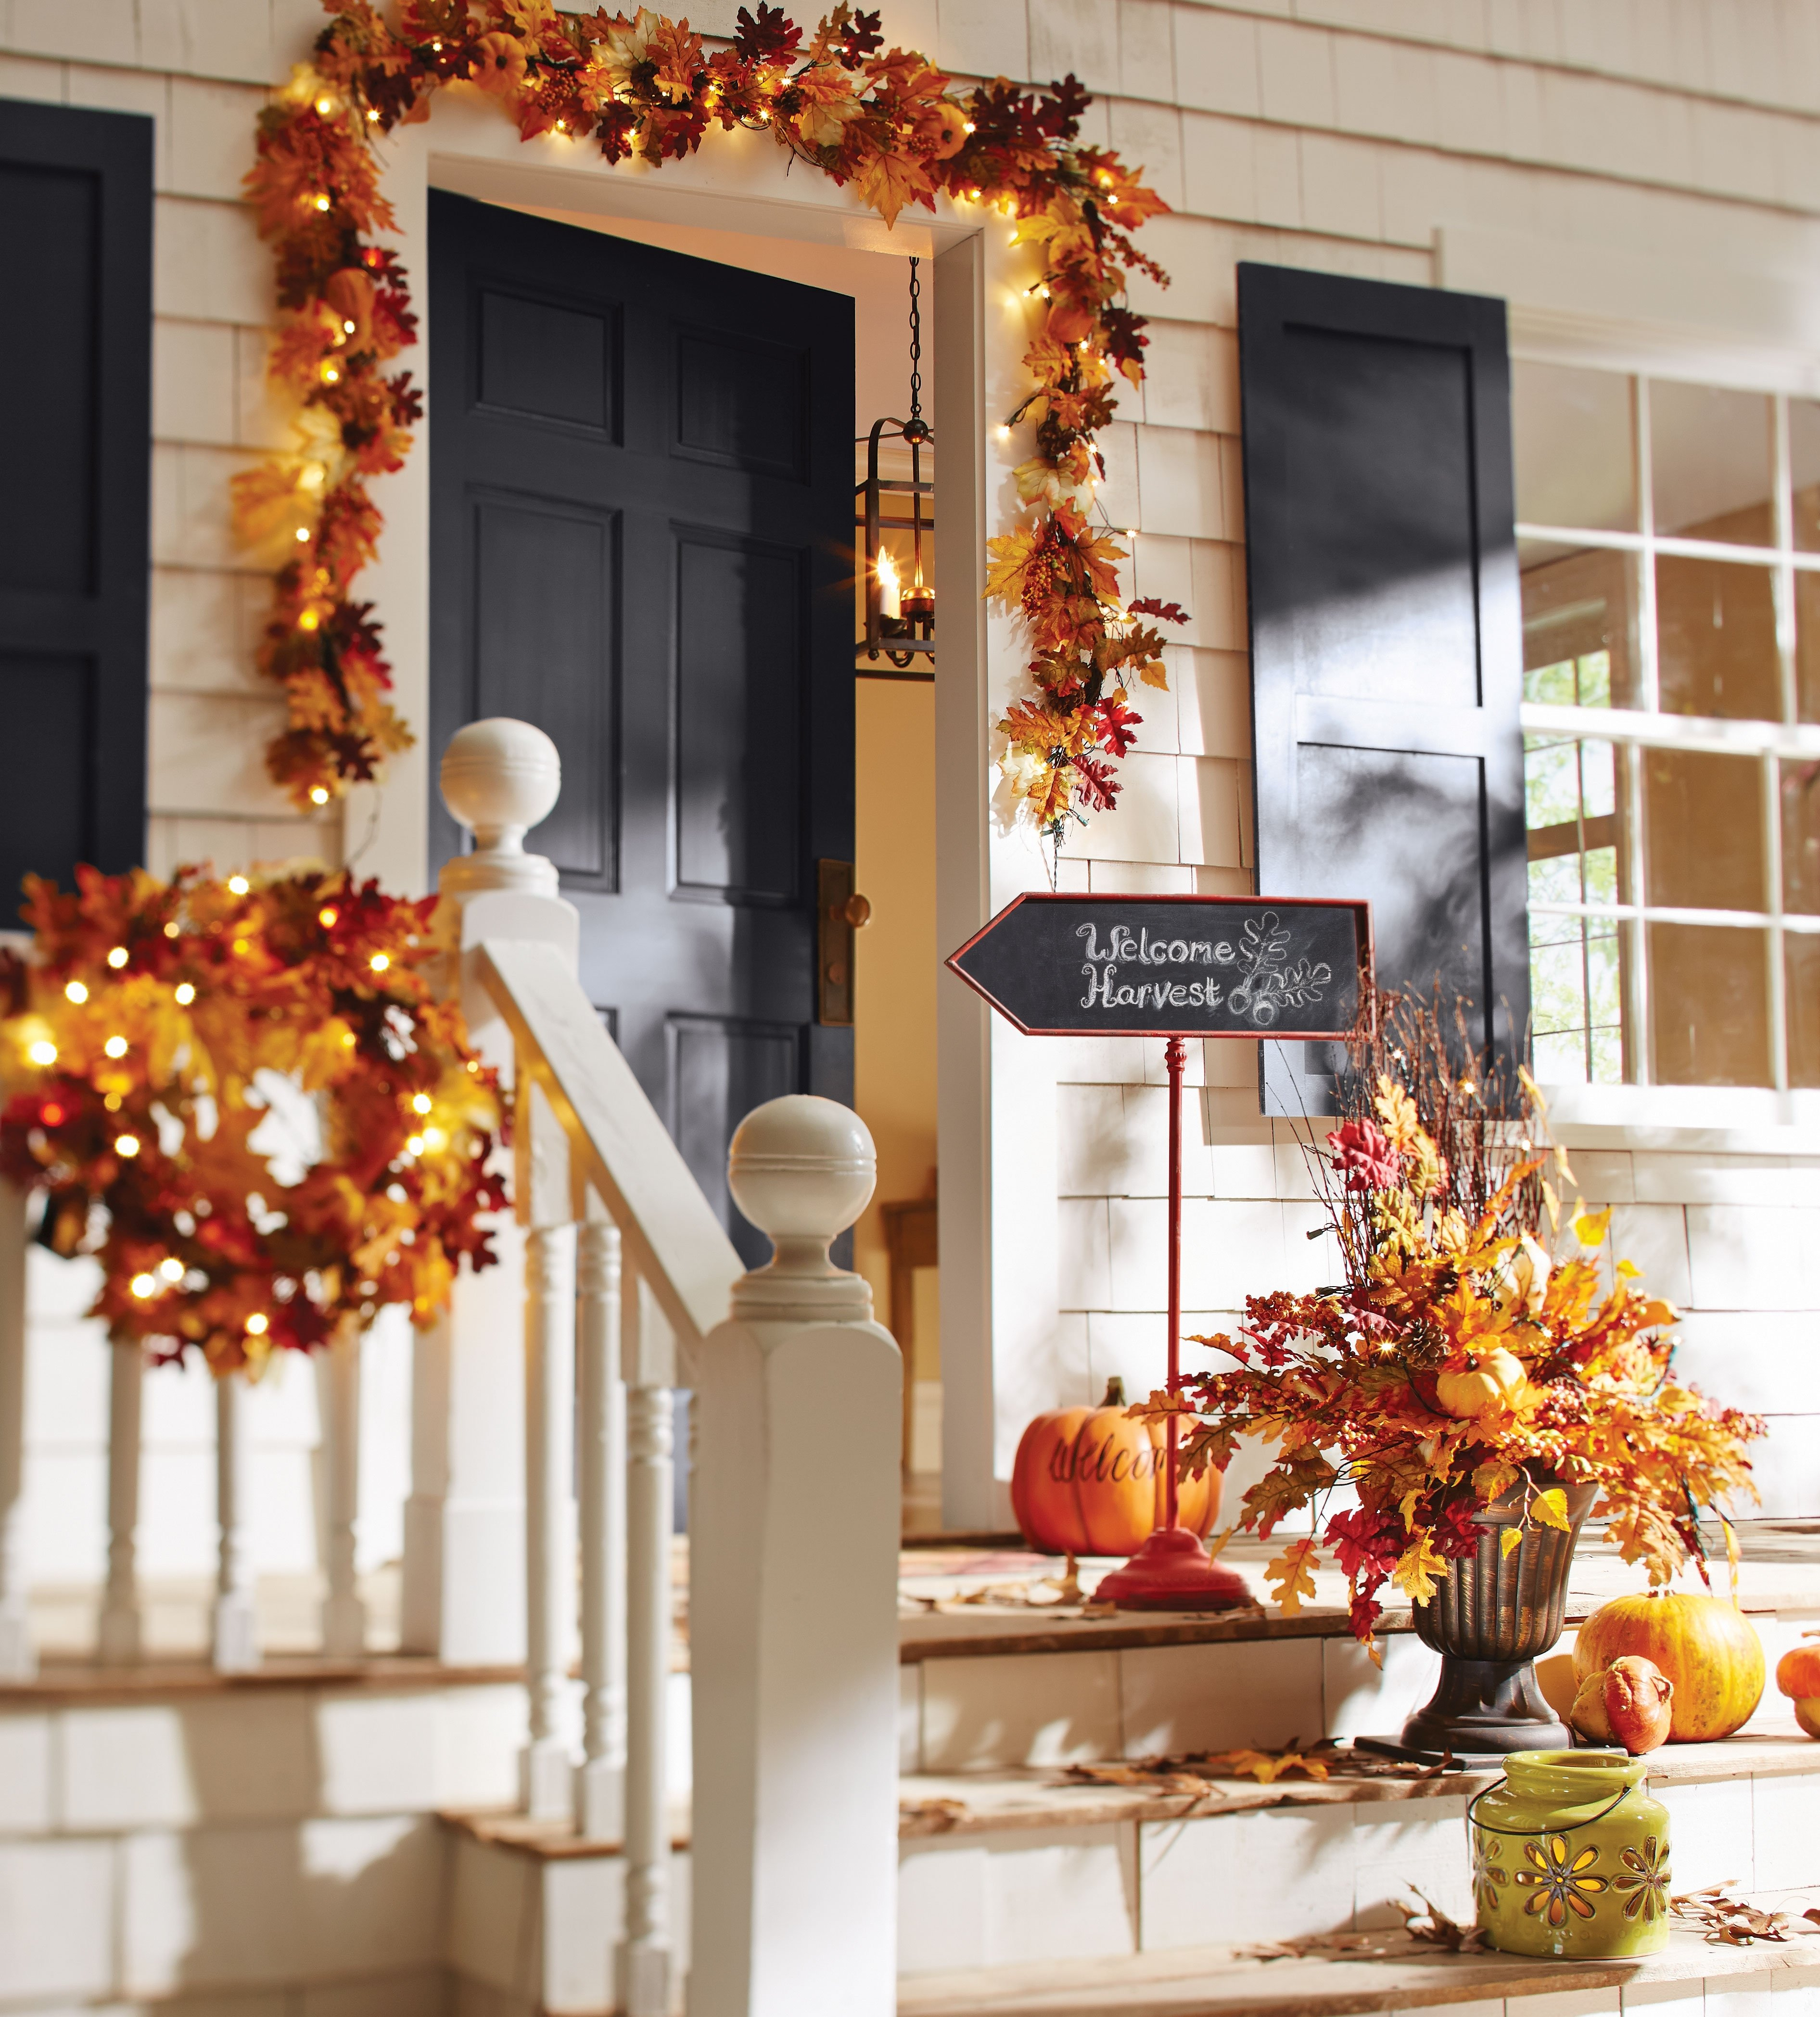 10 Cute Fall Front Porch Decorating Ideas fall decorating ideas for your front porch and entryway 2020